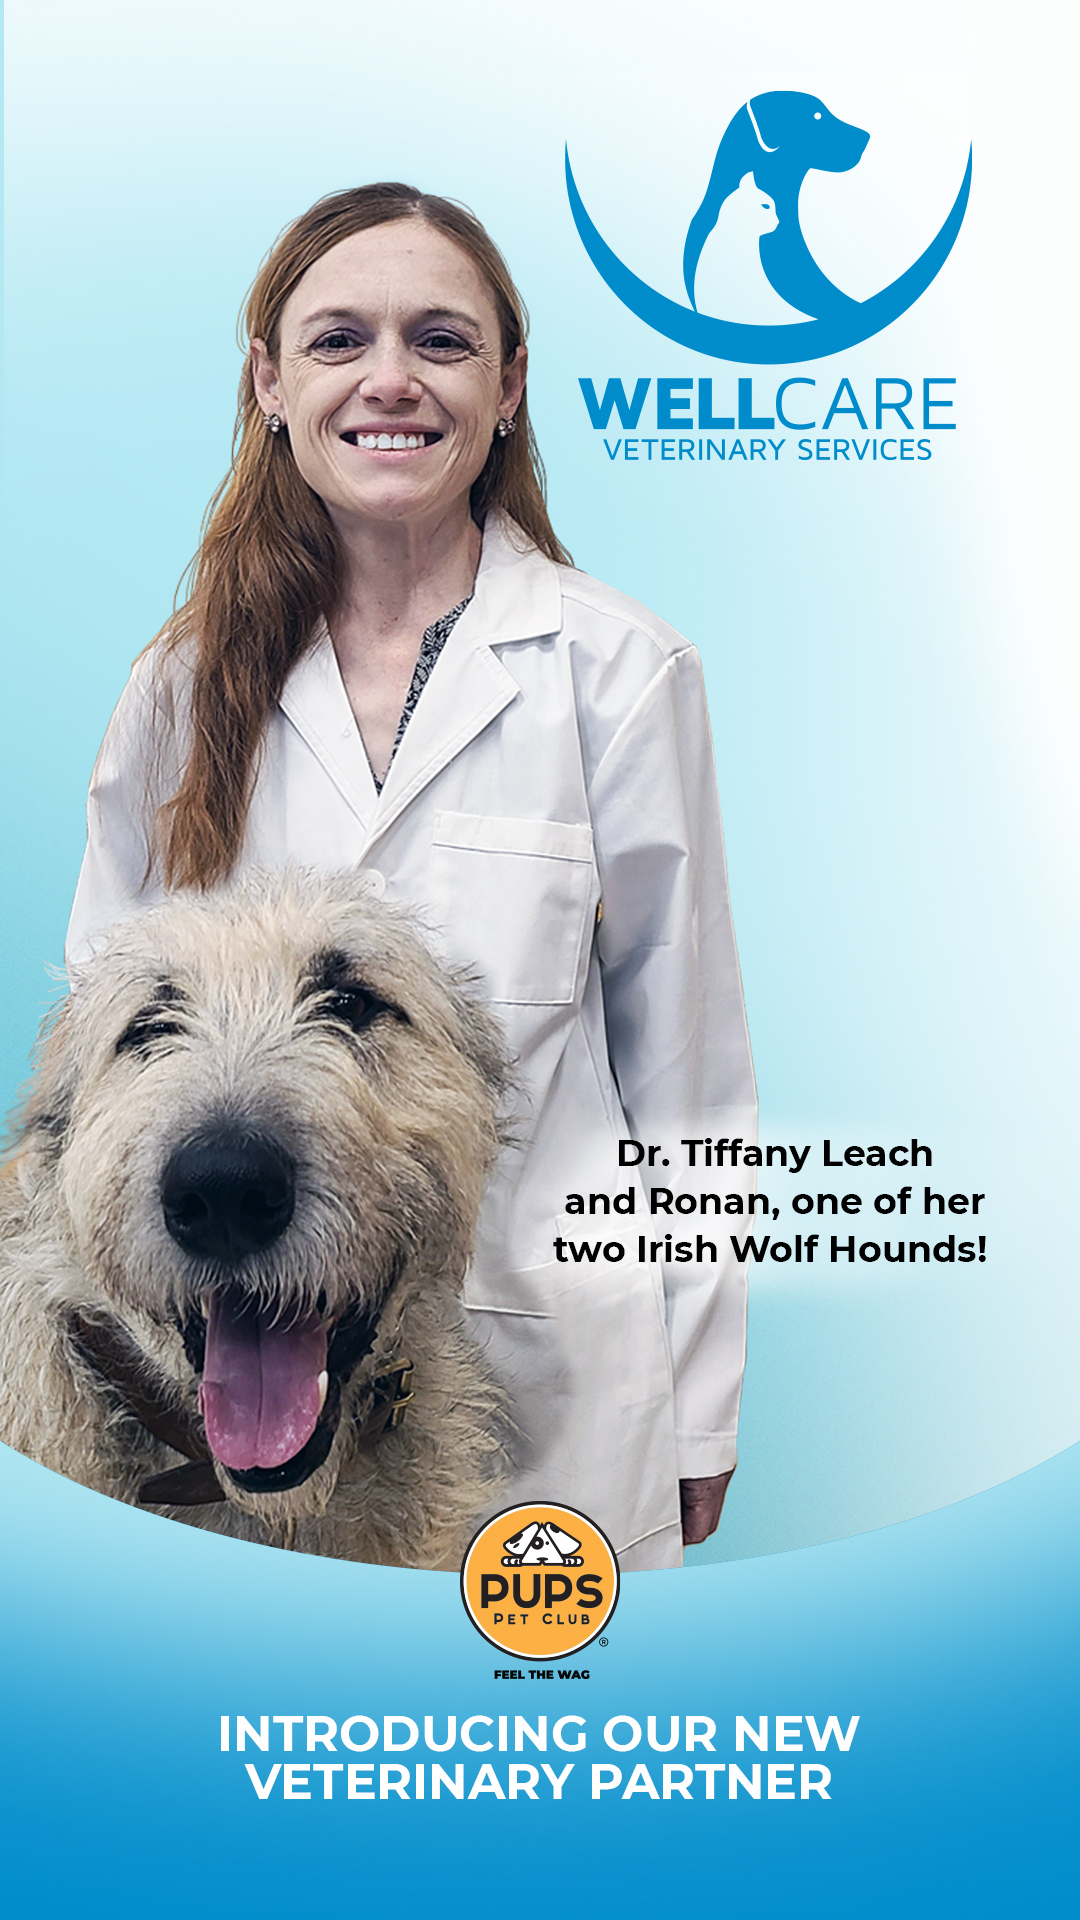 Comprehensive veterinary services, under one roof – that's something to woof about!